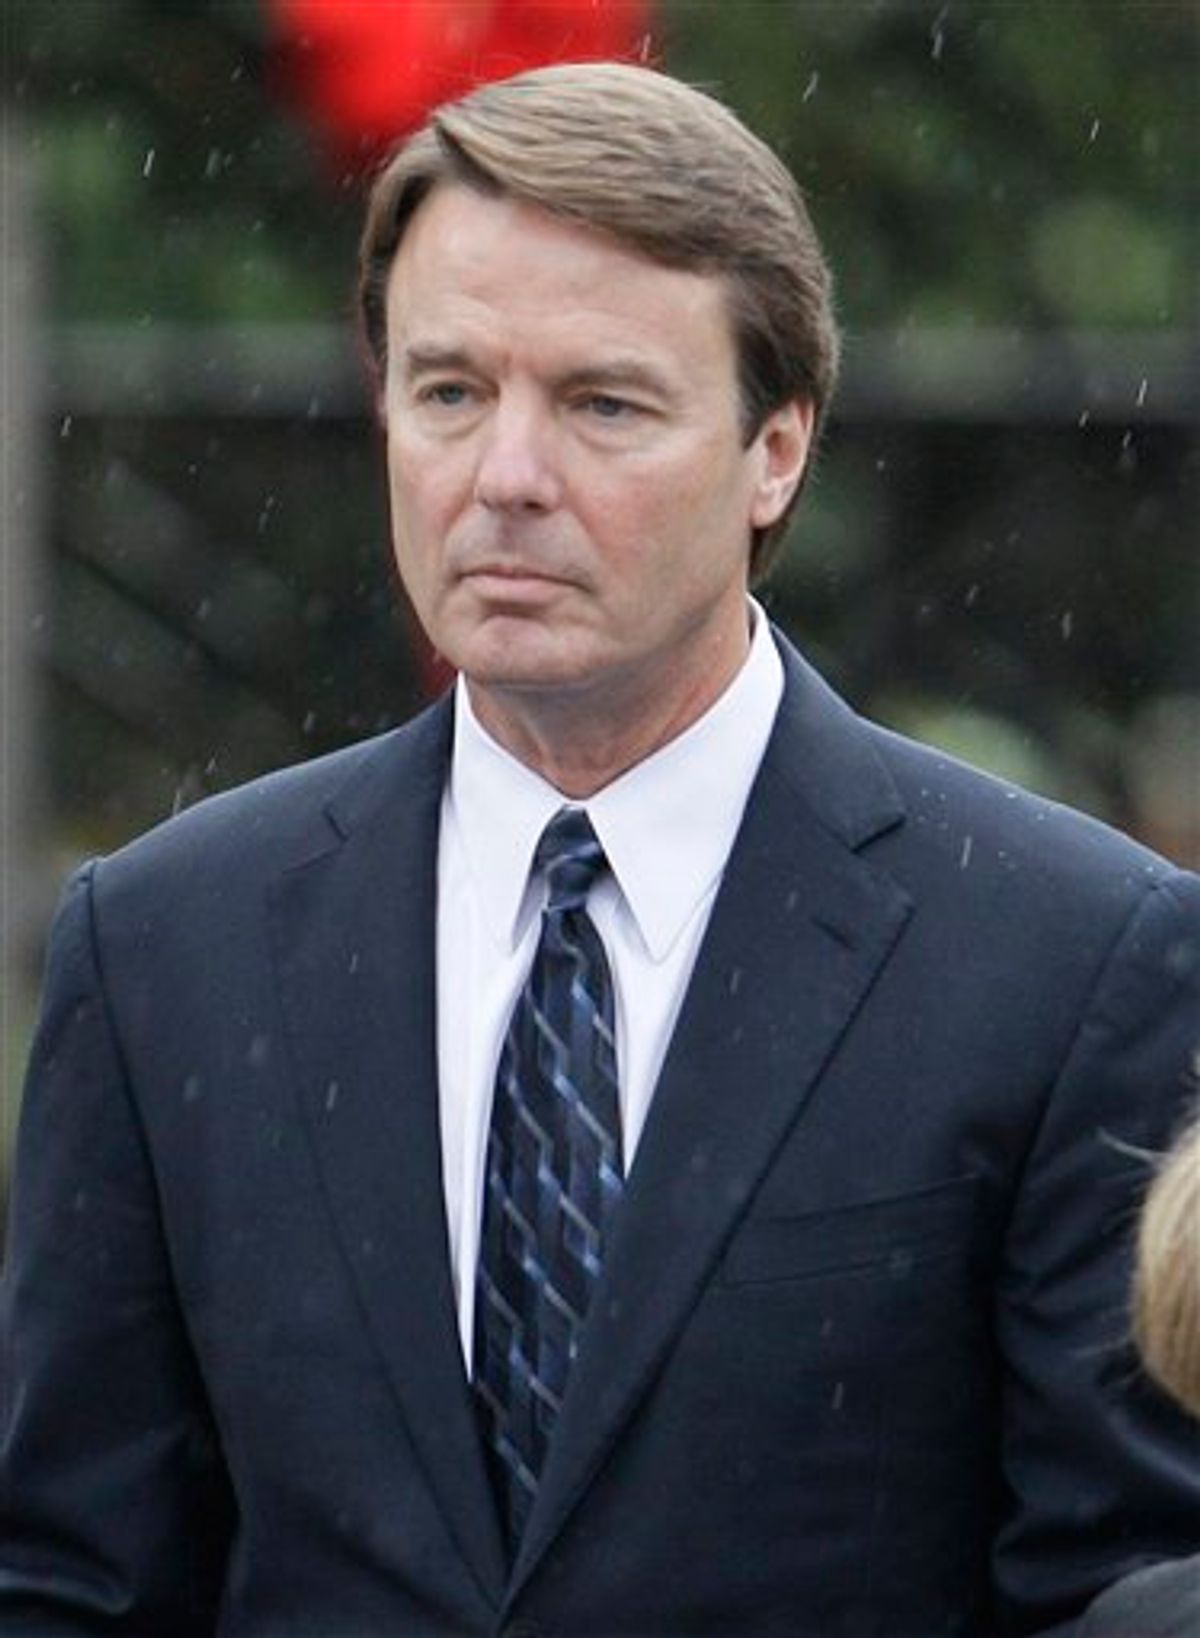 FILE - In this Dec. 11, 2010 file photo, former Democratic presidential candidate John Edwards is seen in Raleigh, N.C. Edwards and federal prosecutors are arguing over whether the money used to cover up his extramarital affair was a campaign contribution or just a gift from his old friends. An indictment of the 2004 Democratic vice presidential nominee appears imminent, but people on both sides still hold out hope for a last-minute deal for a guilty plea to a negotiated charge.  (AP Photo/Gerry Broome, File) (AP)